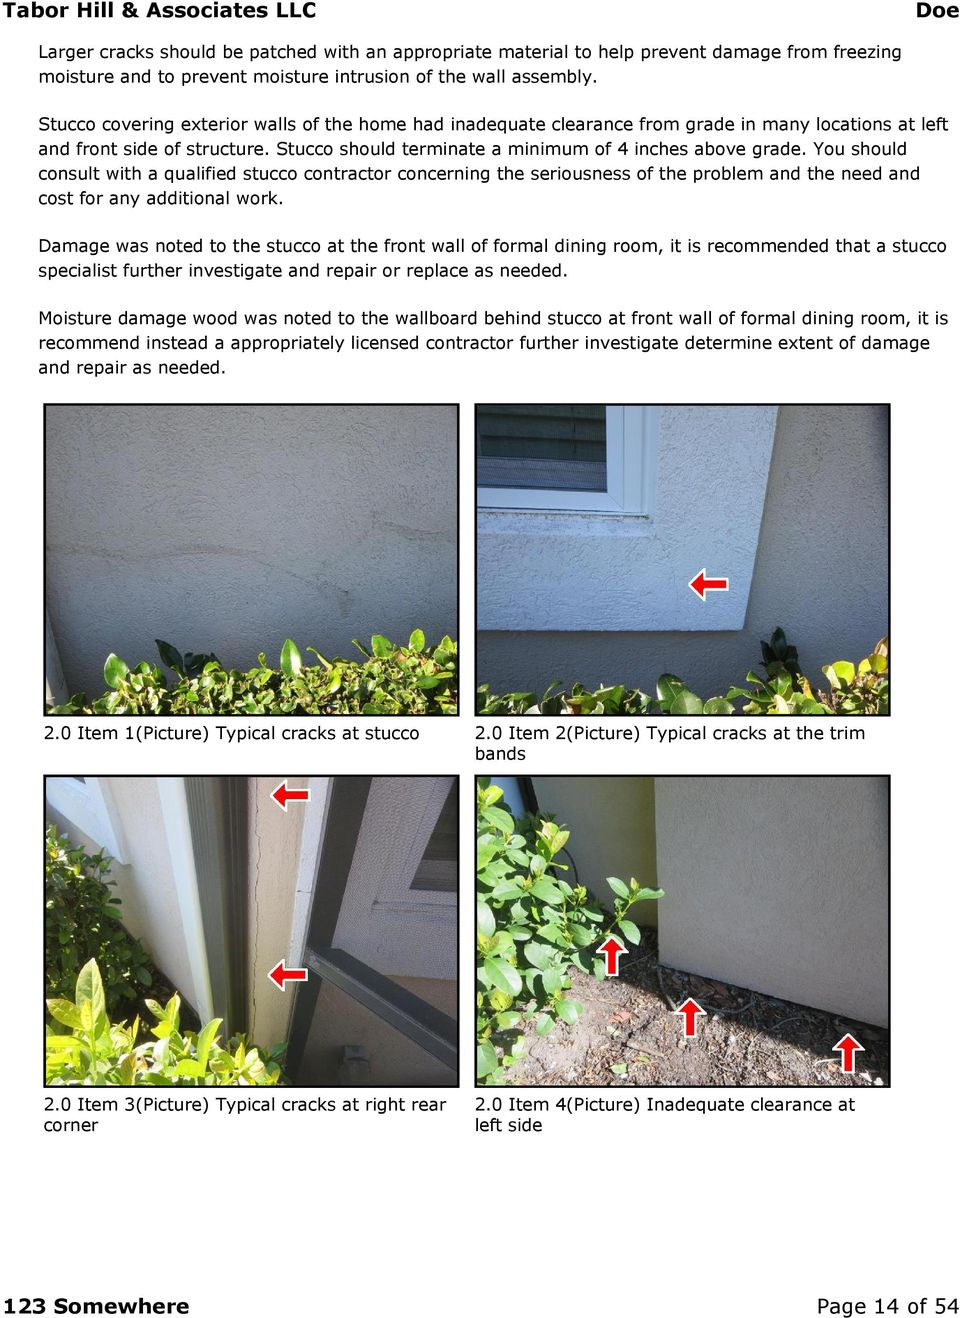 You should consult with a qualified stucco contractor concerning the seriousness of the problem and the need and cost for any additional work.